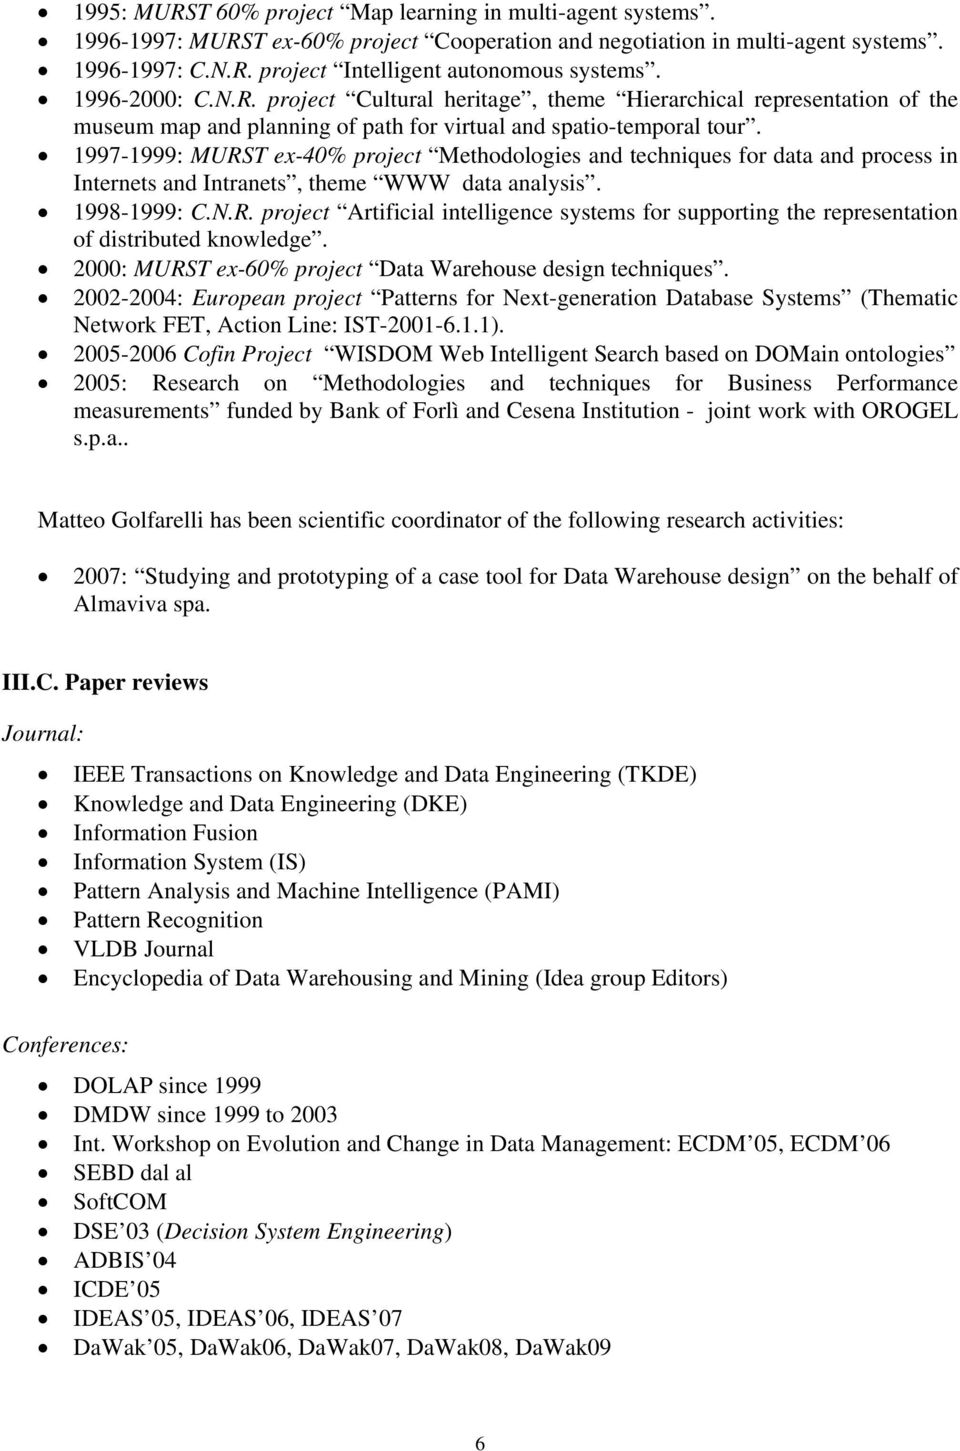 1997-1999: MURST ex-40% project Methodologies and techniques for data and process in Internets and Intranets, theme WWW data analysis. 1998-1999: C.N.R. project Artificial intelligence systems for supporting the representation of distributed knowledge.